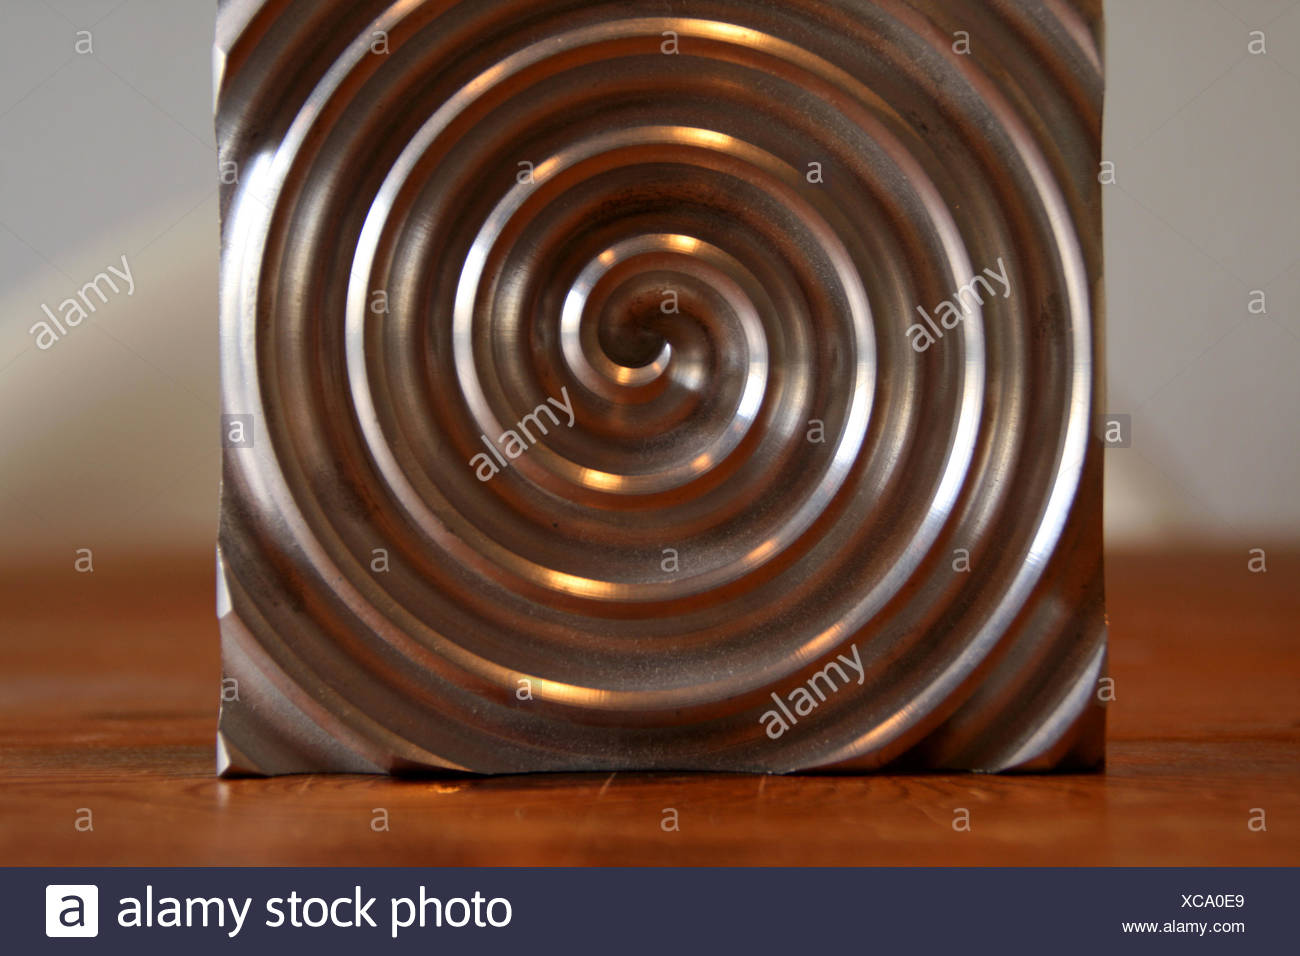 aluminium circle Stock Photo